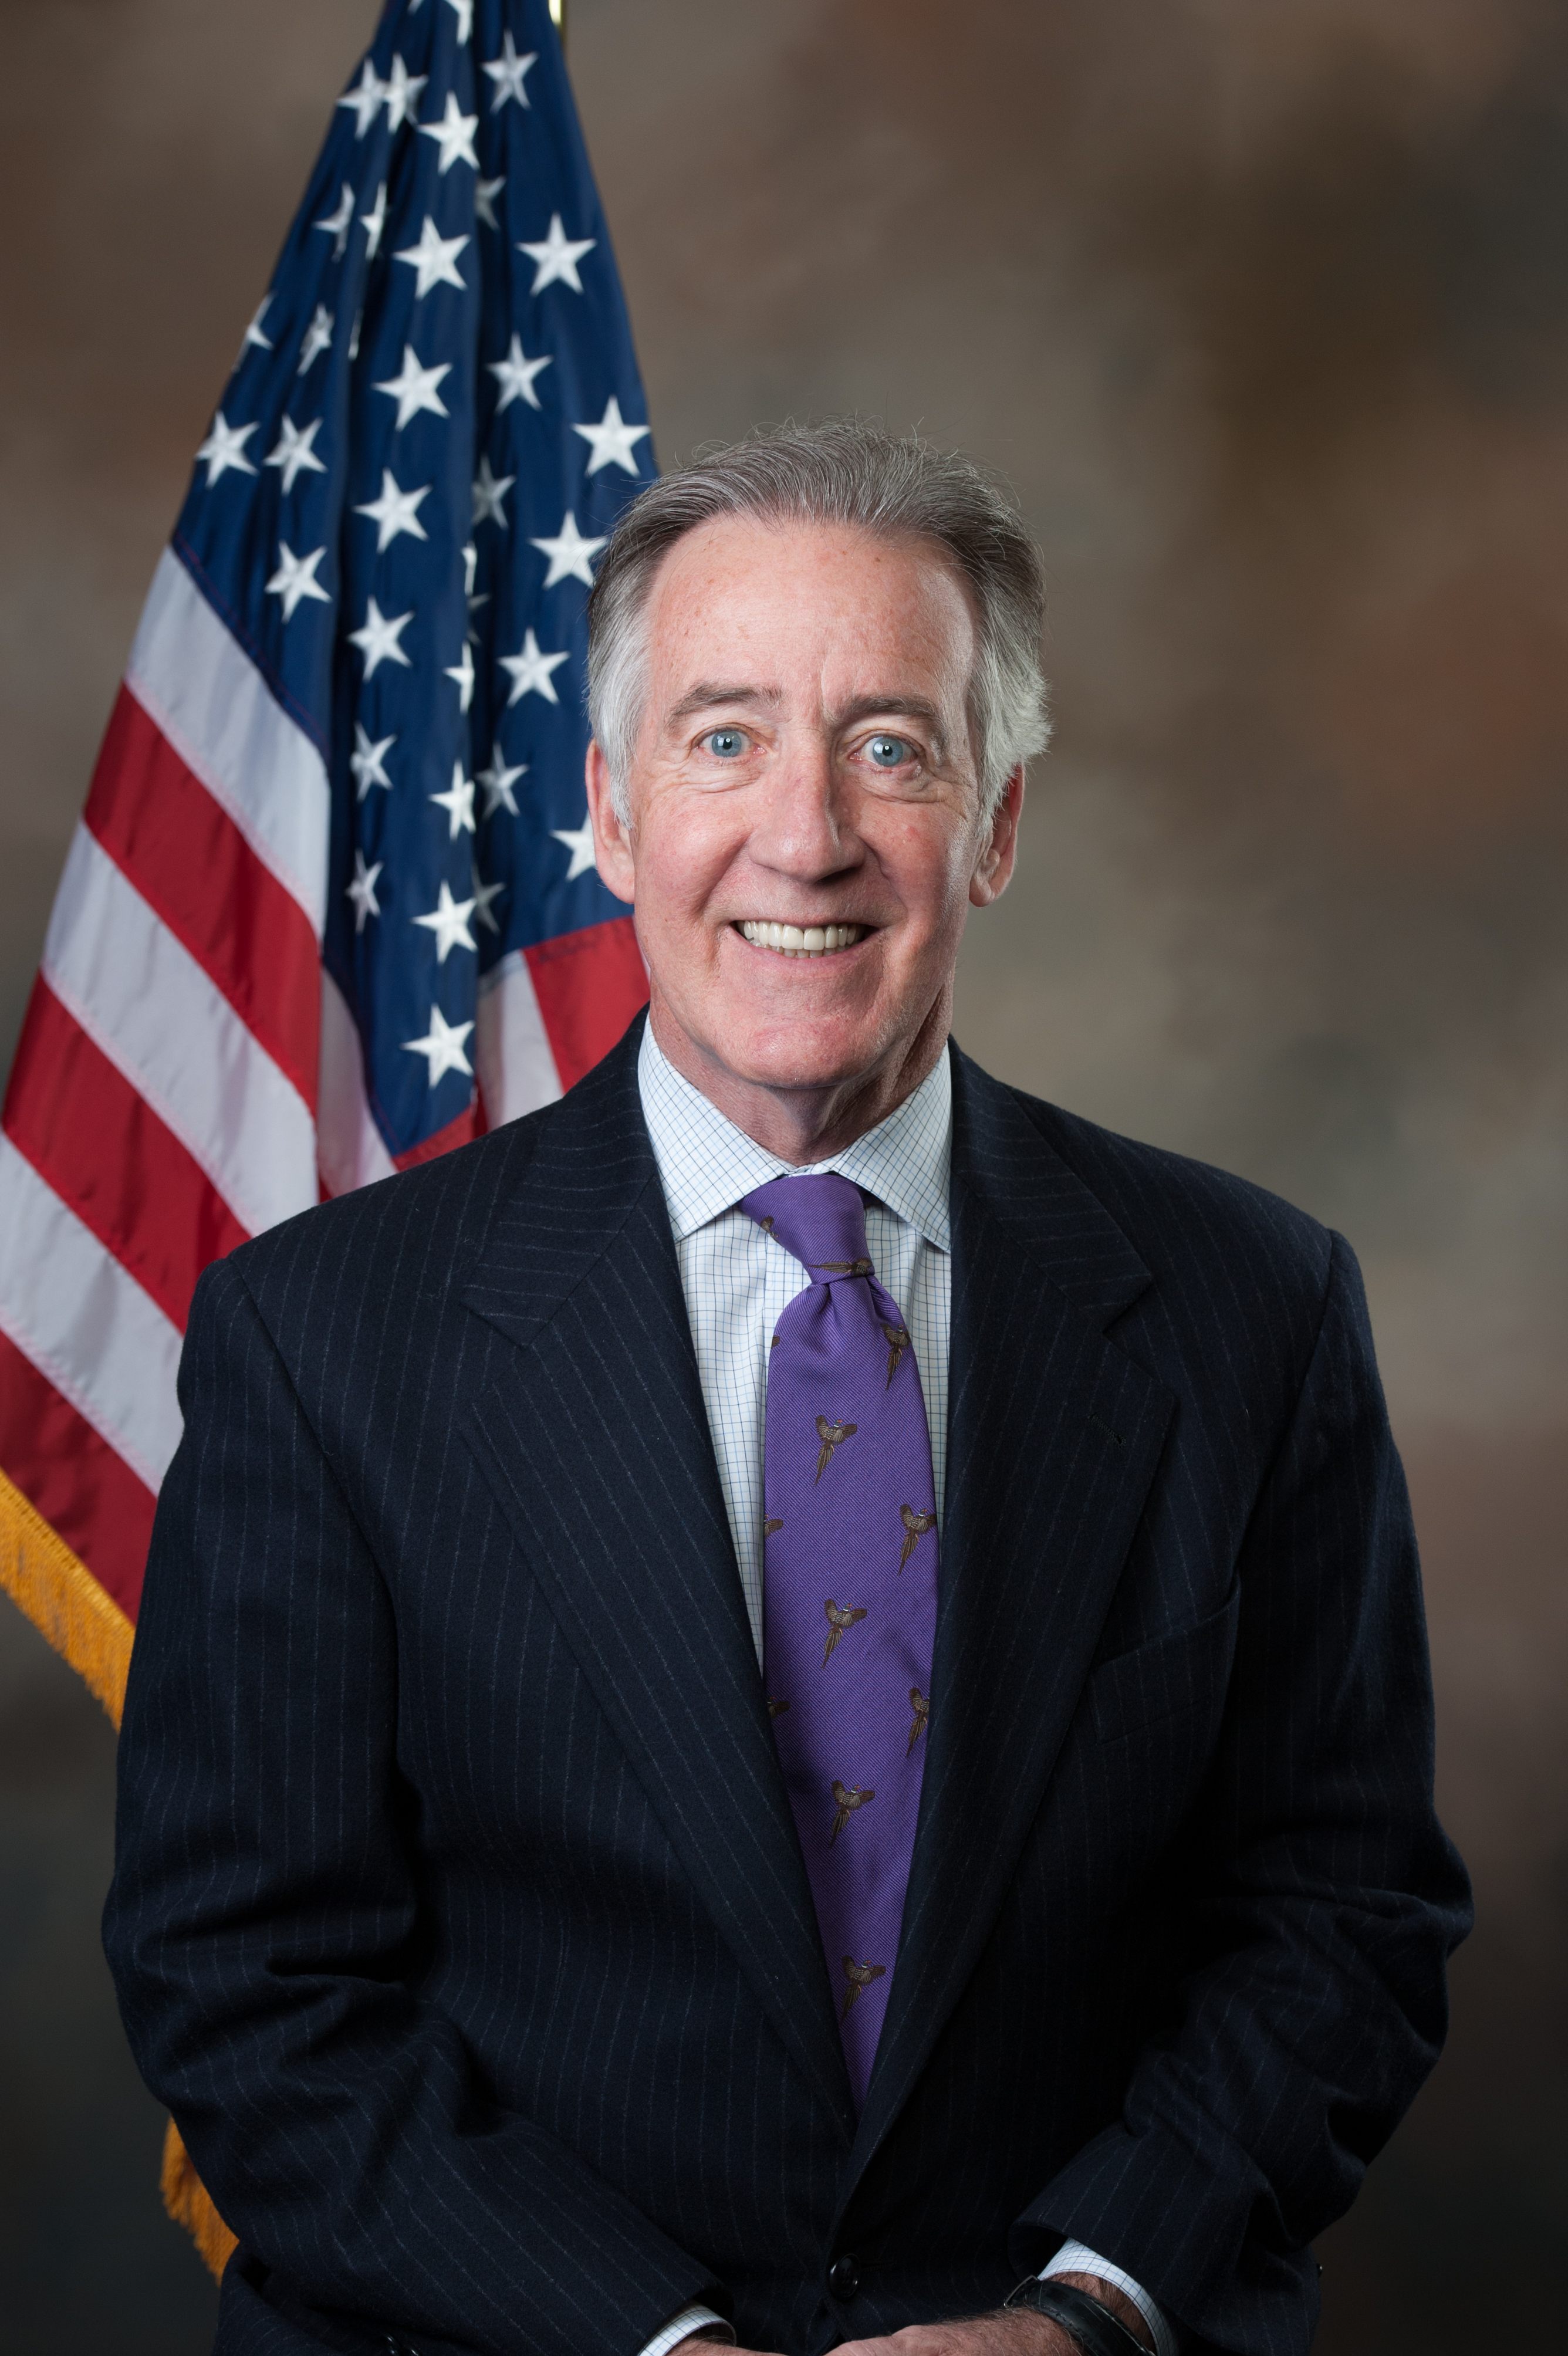 richard neal official photo